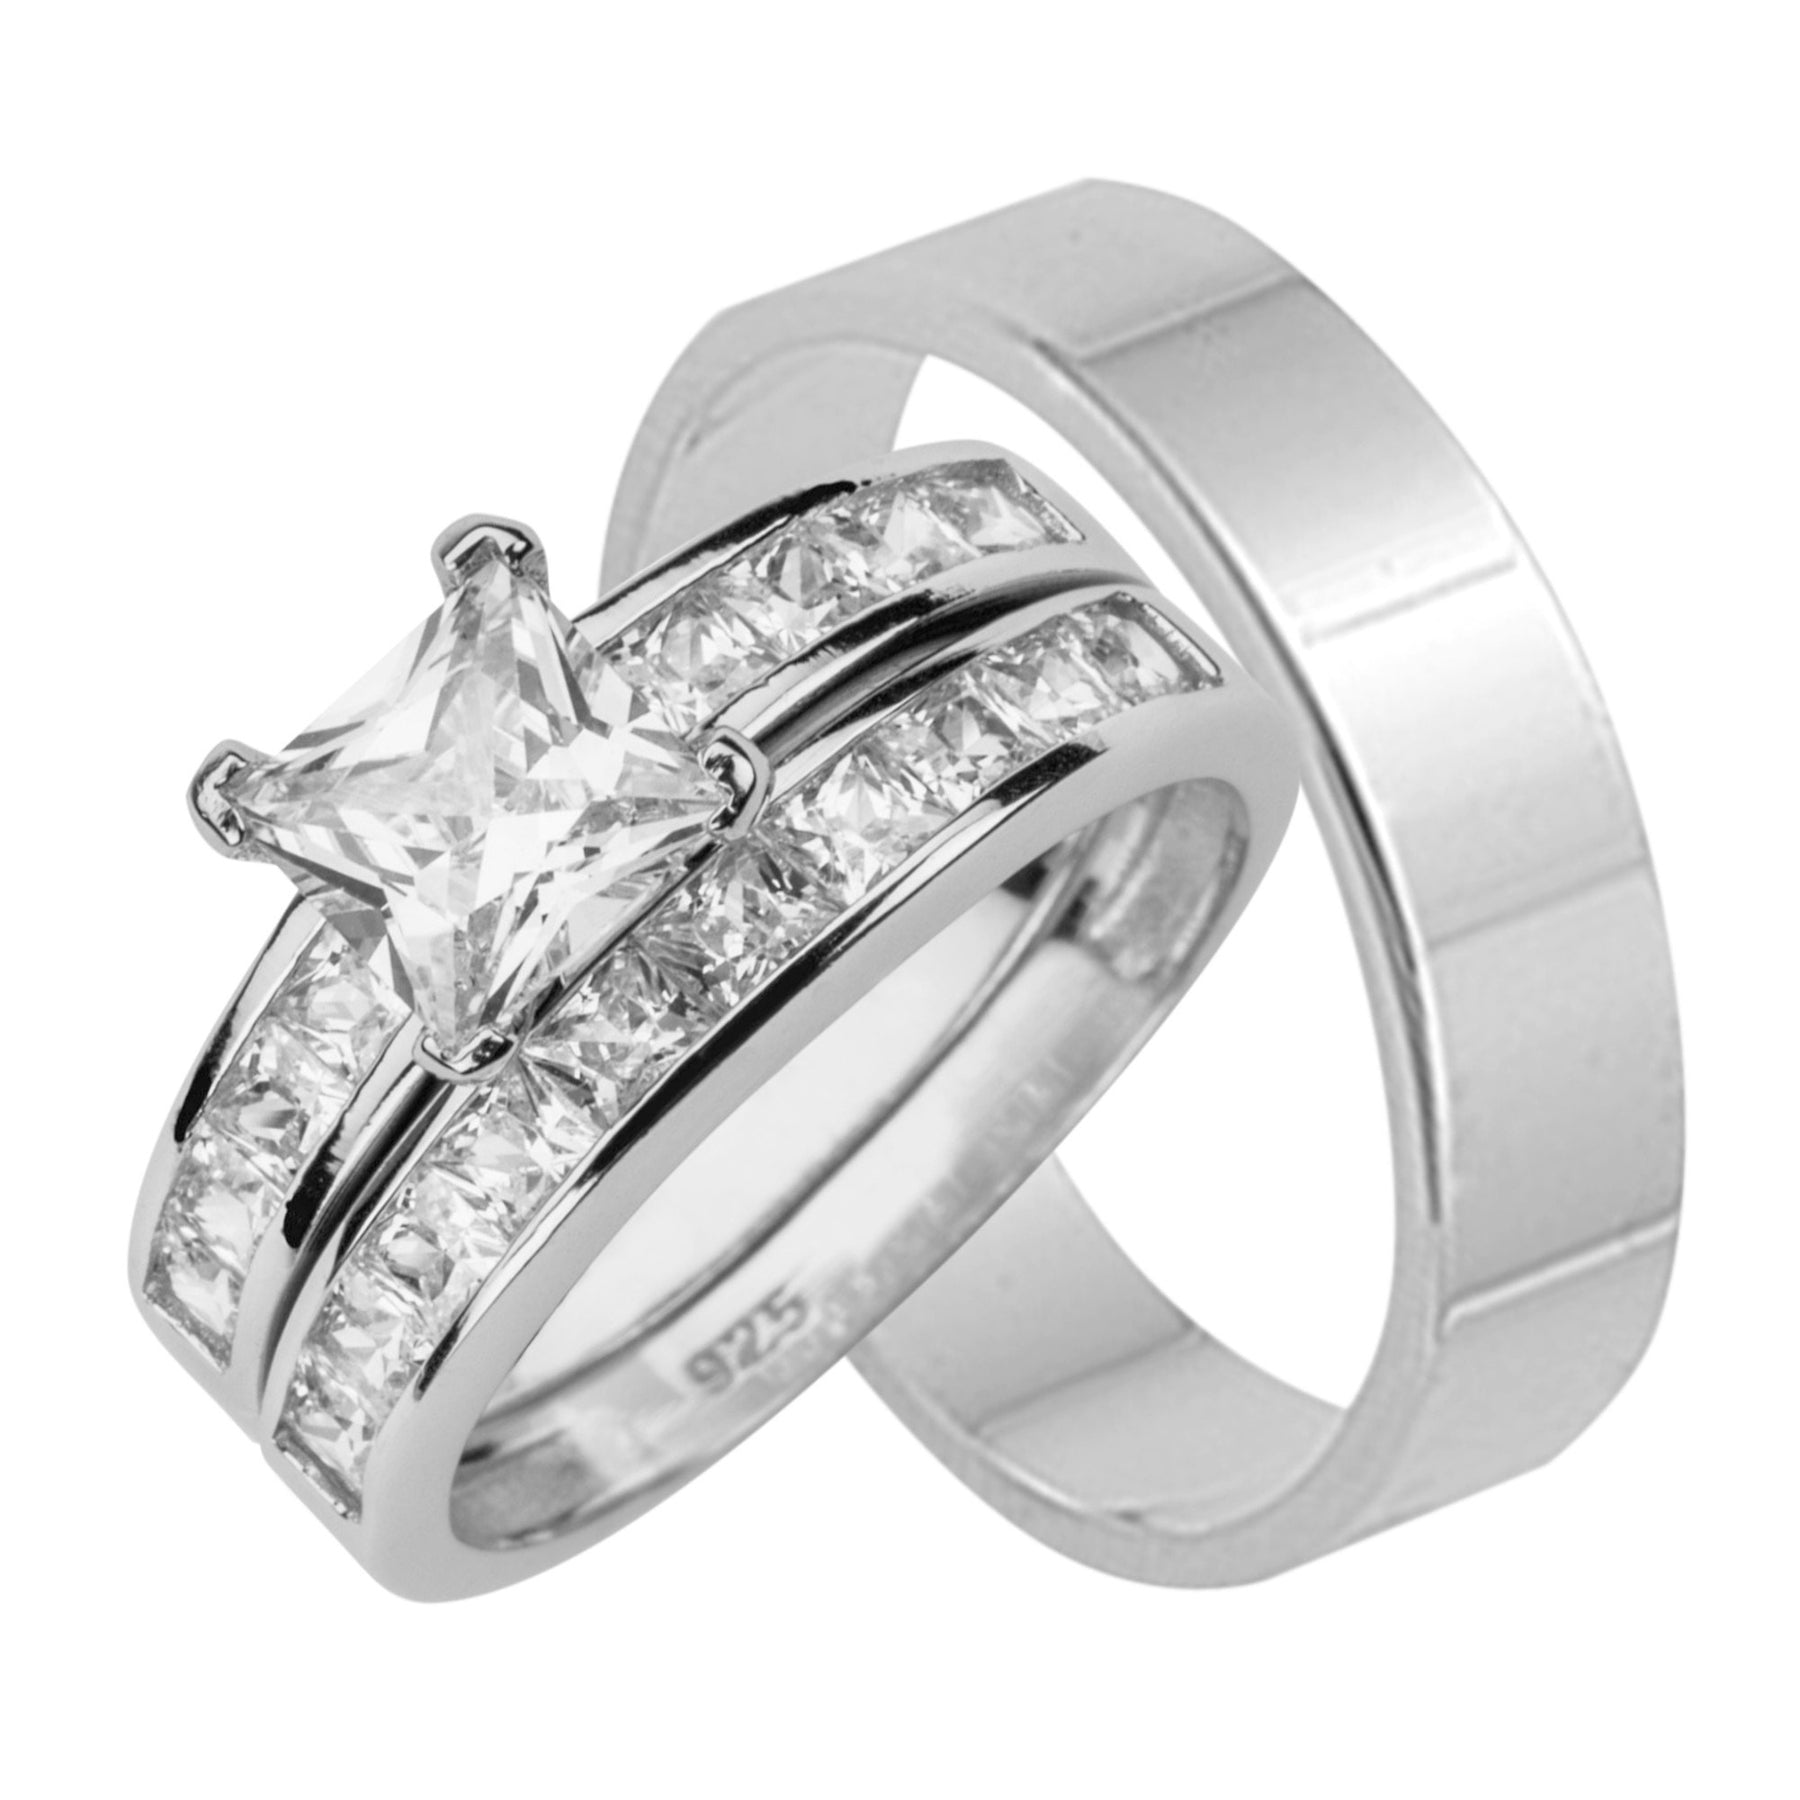 Wedding Rings Cheap.His And Hers Sterling Silver Wedding Ring Set Looks Real Not Cheap